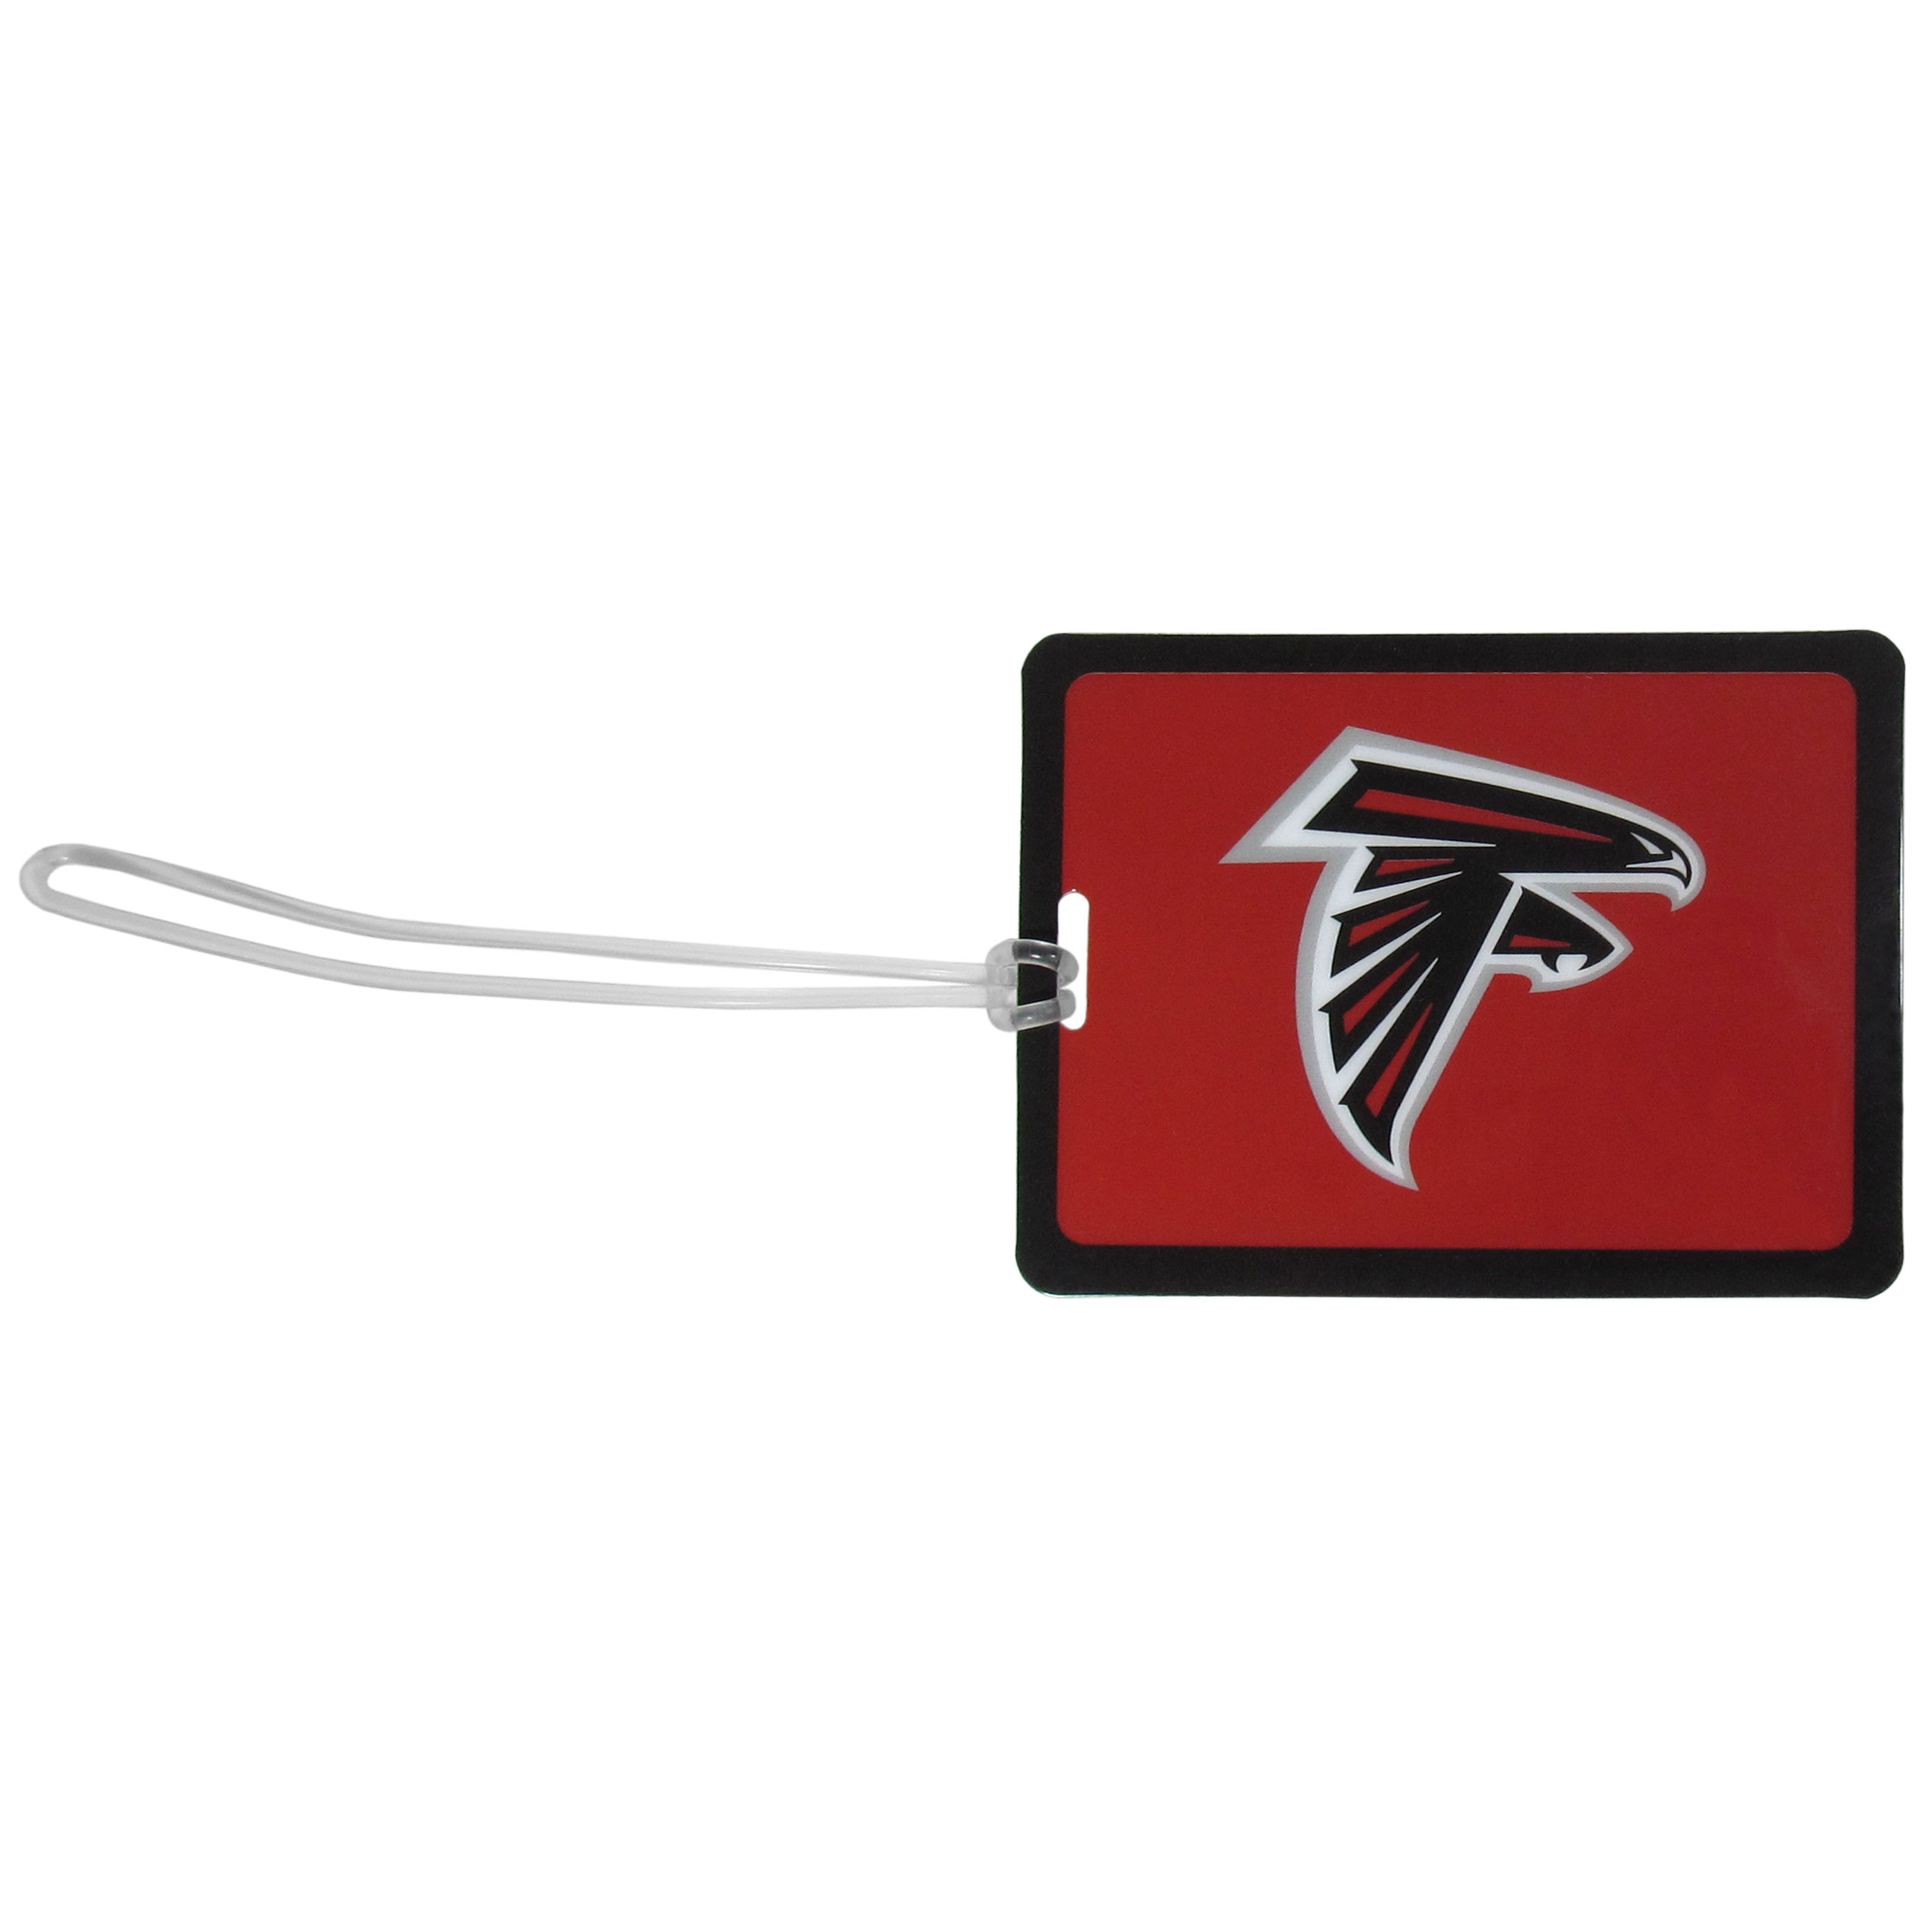 Atlanta Falcons Vinyl Luggage Tag - Tired of trying to spot your suitcase or bag in a sea of luggage? Try our large and colorful Atlanta Falcons luggage tag set. The tag is 4x3 inches and has a 5 inch cord to attach it easily to your bags, backpacks or luggage. The front of the tag features the team logo in a bright, team colored background and you can write you name, address and phone number on the back of the tag.